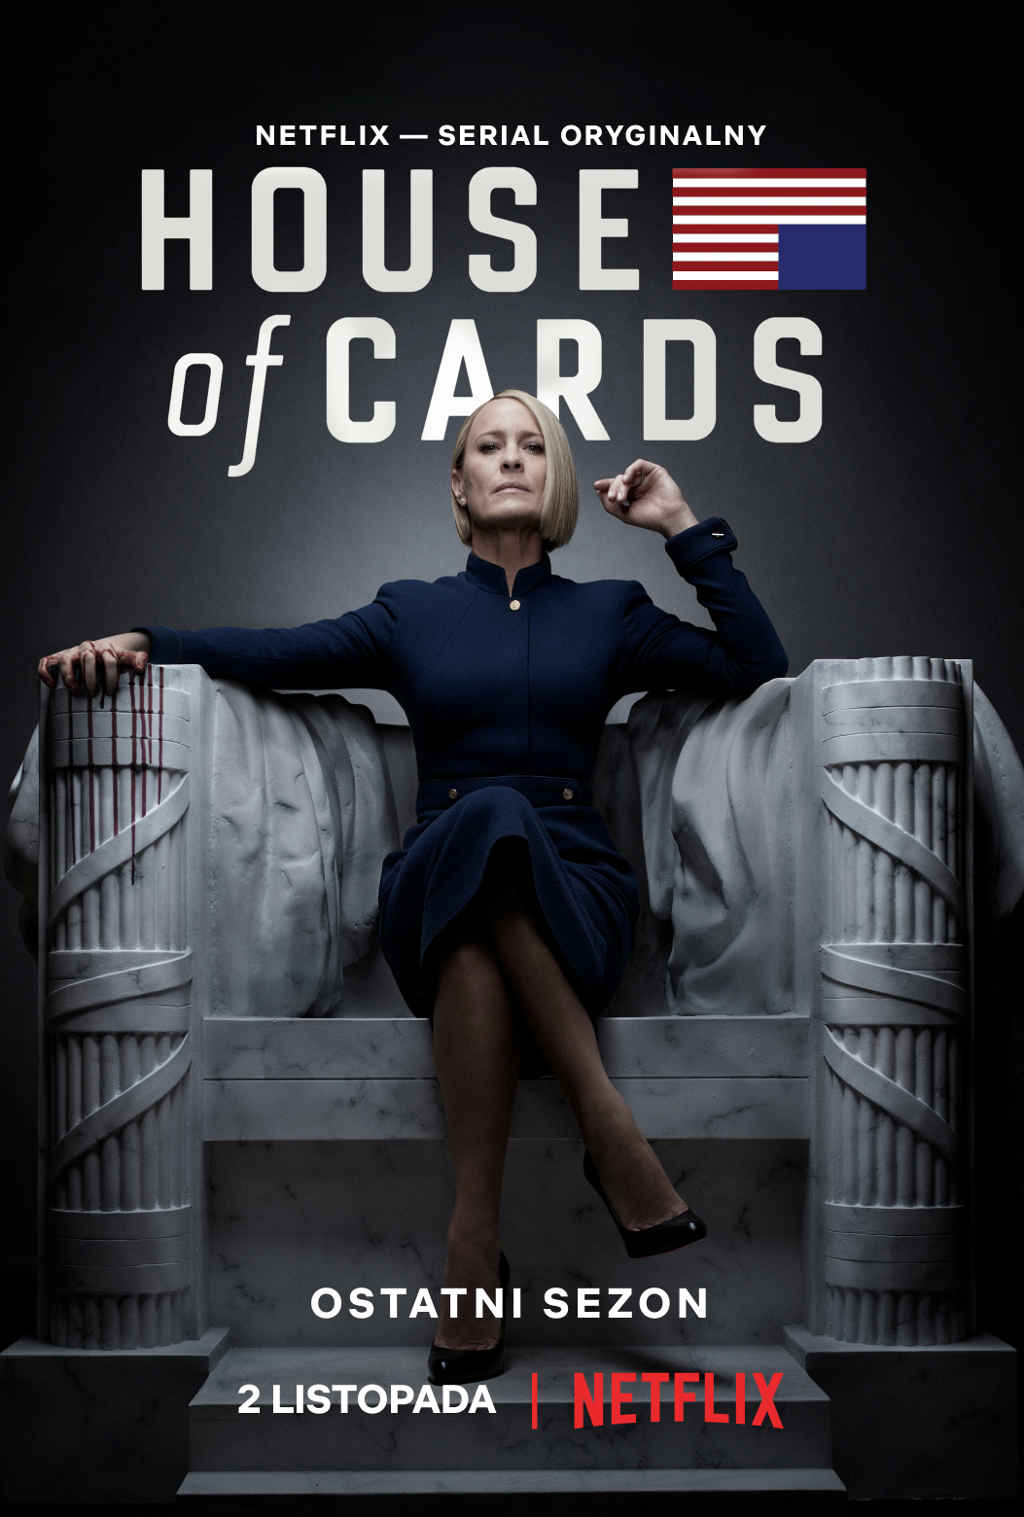 netflix house of cards s6 poster pl